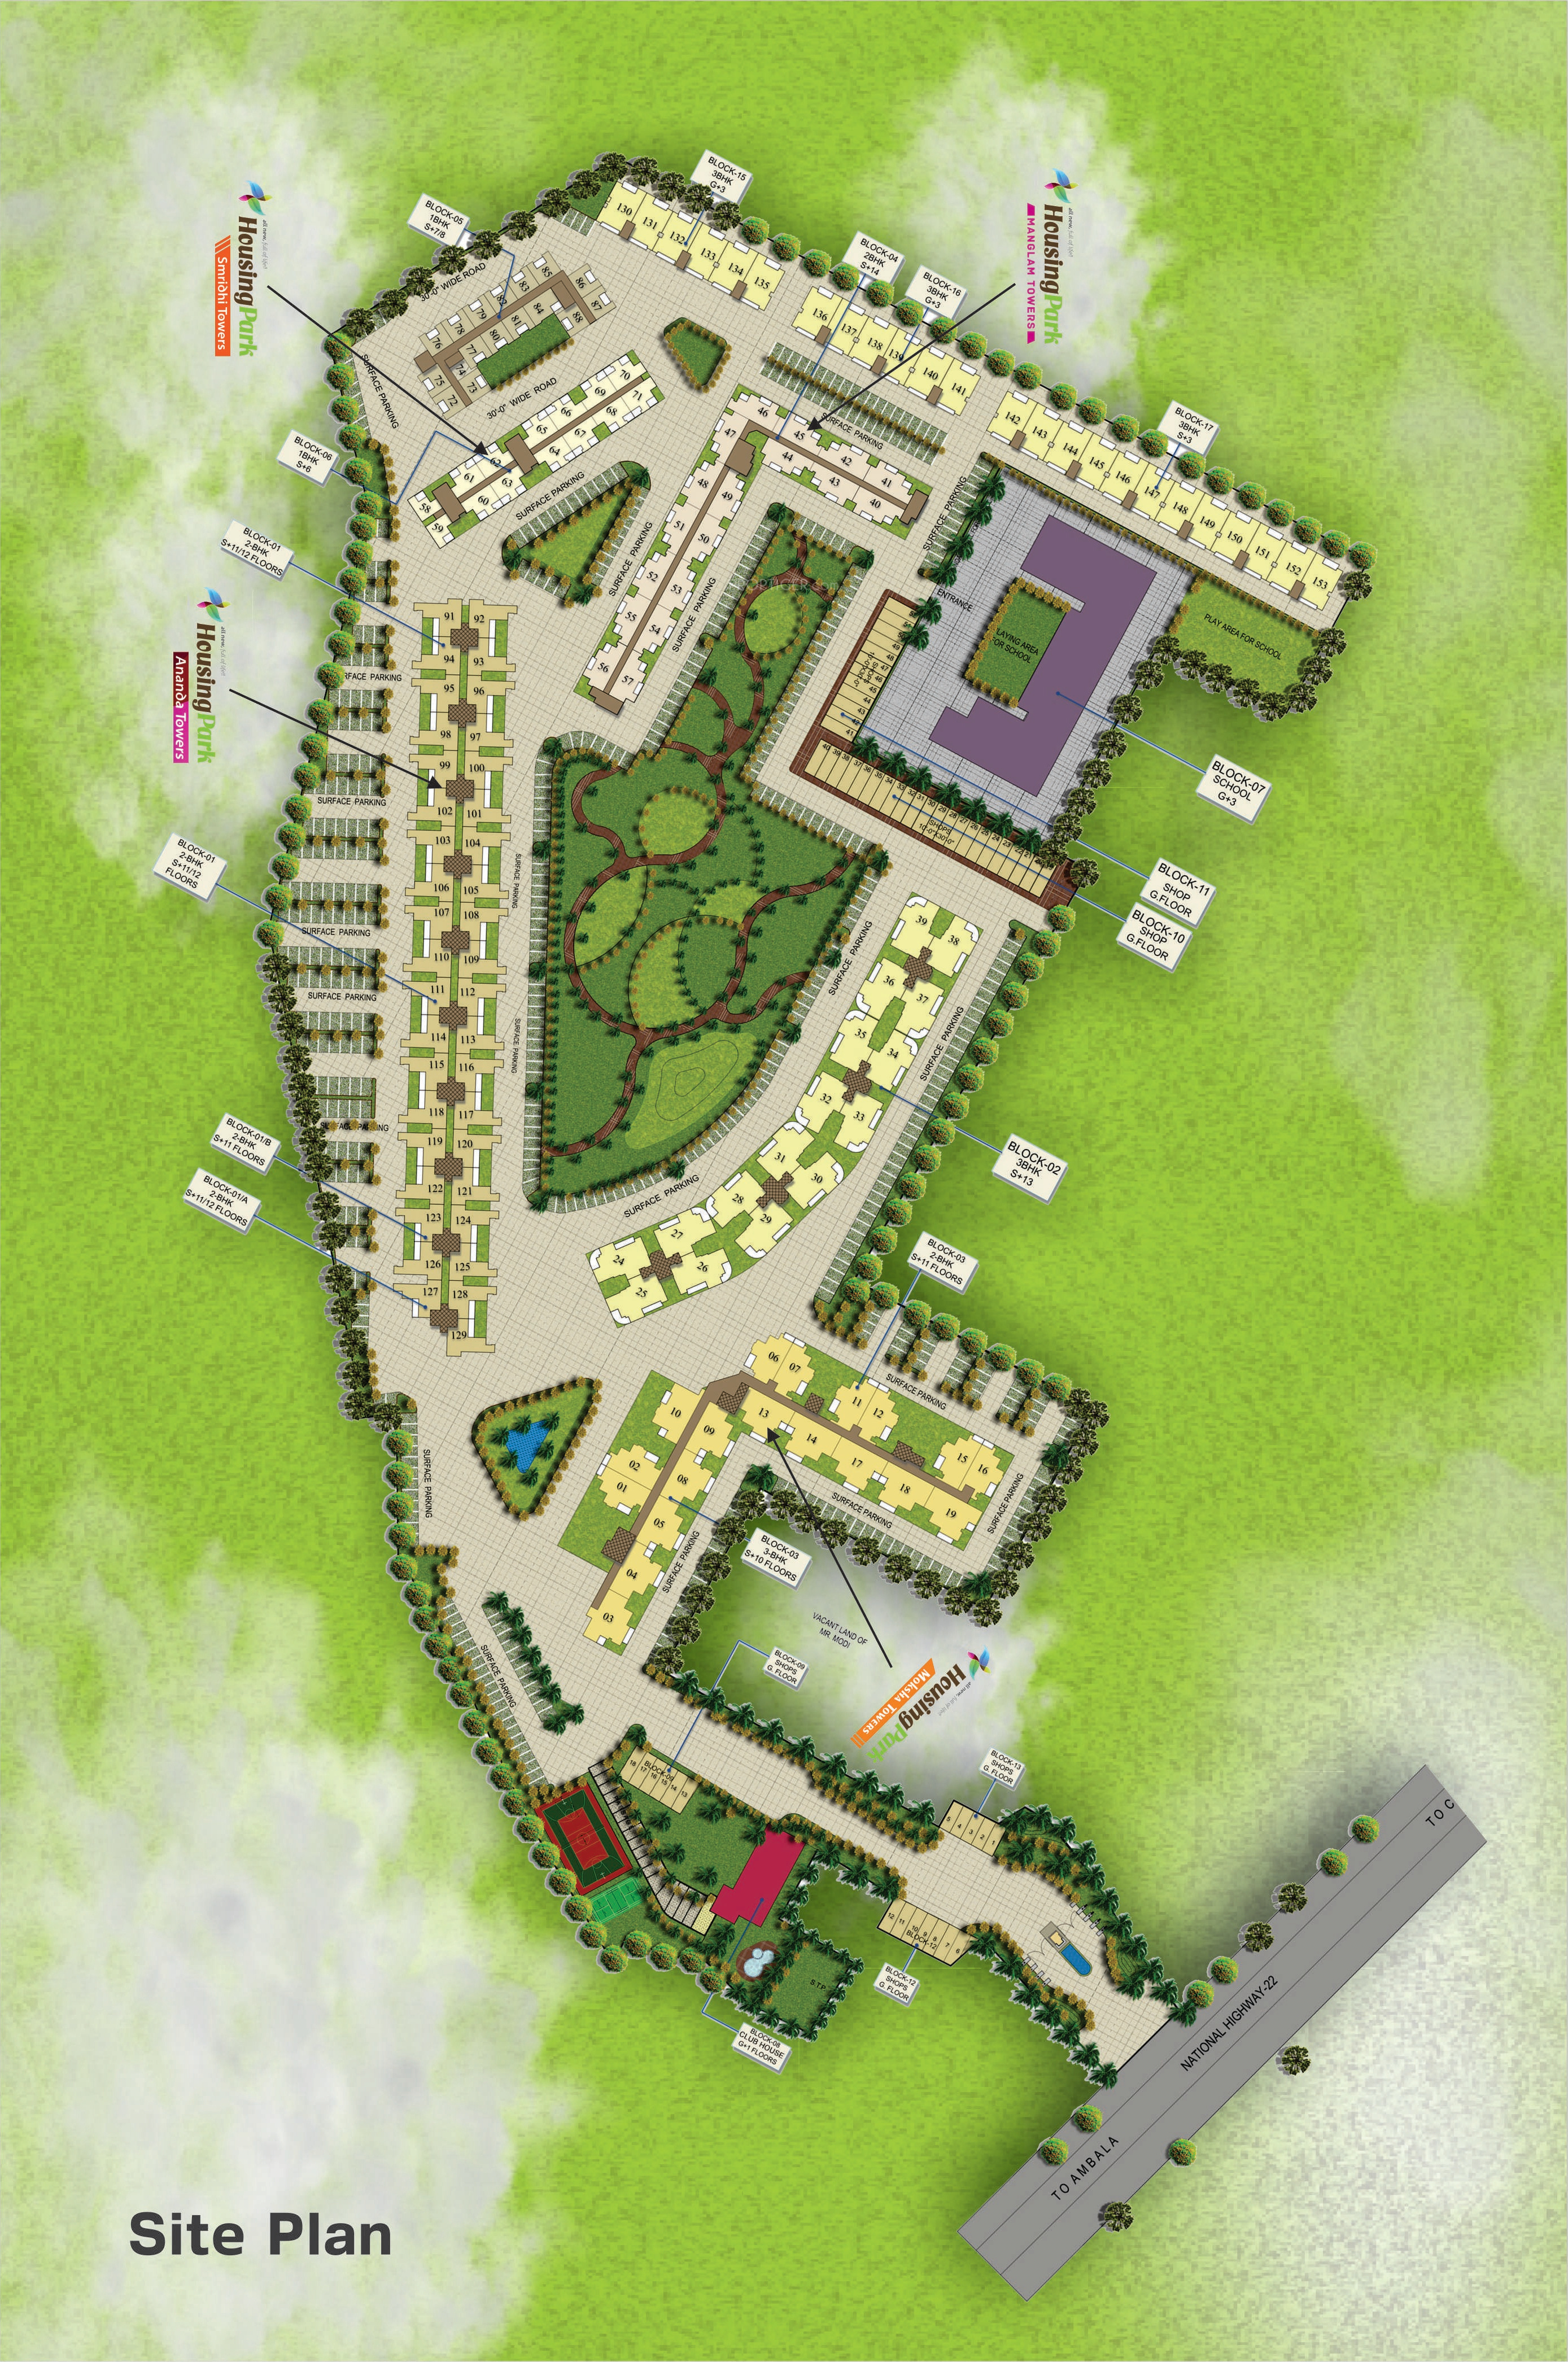 Marvellous Housing Layout Plan Ideas - Best Image Engine - afyongmh.com